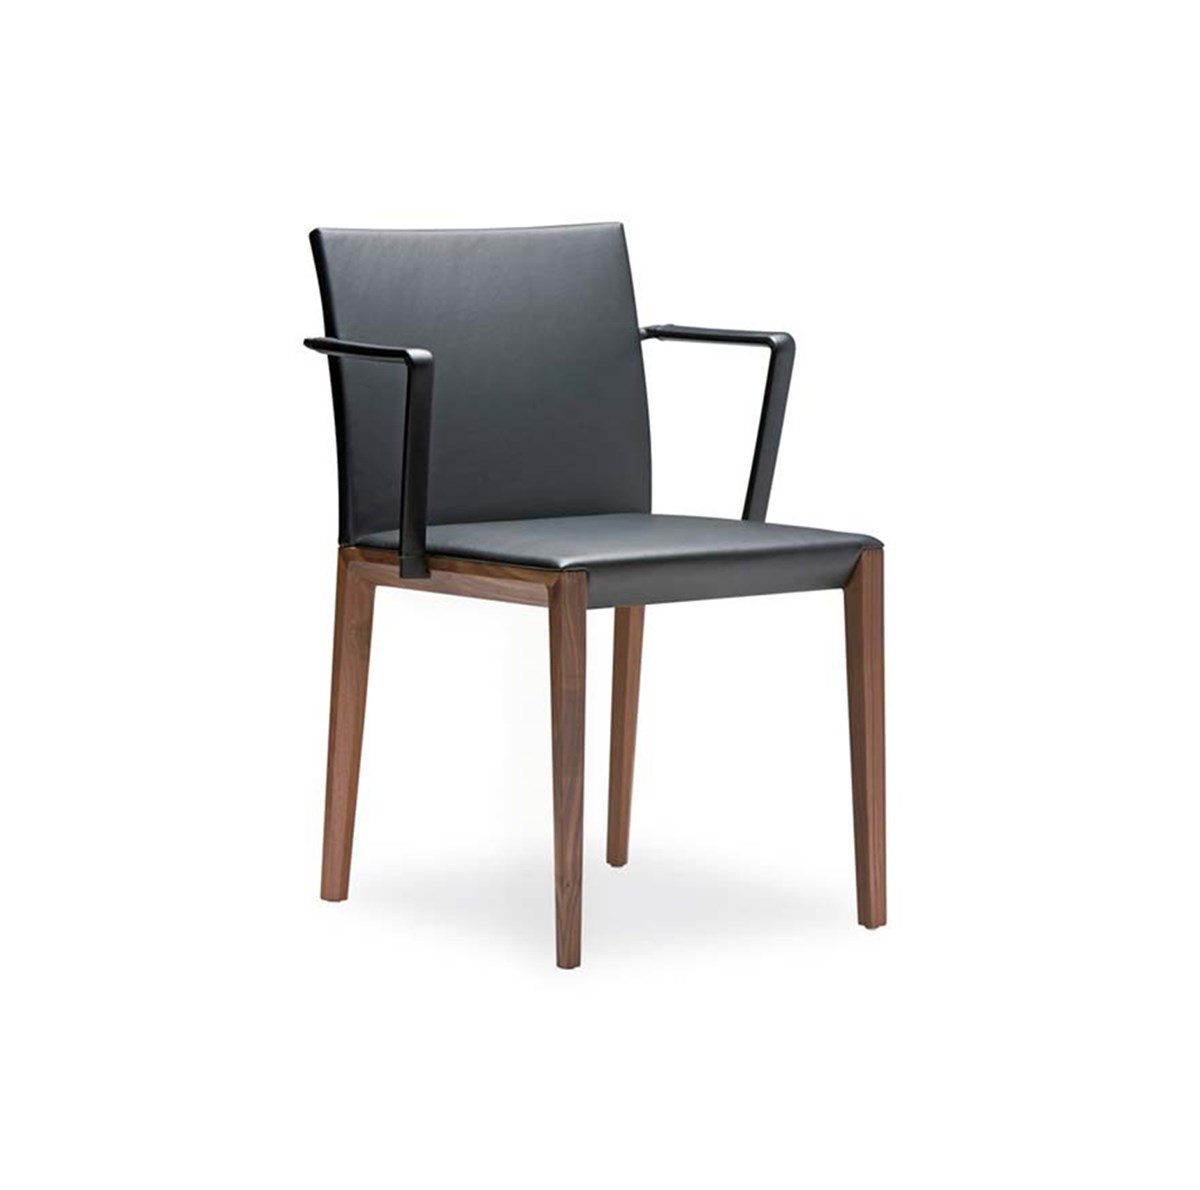 Walter-Knoll-EOOS-Andoo-Dining-Chair-Matisse-1